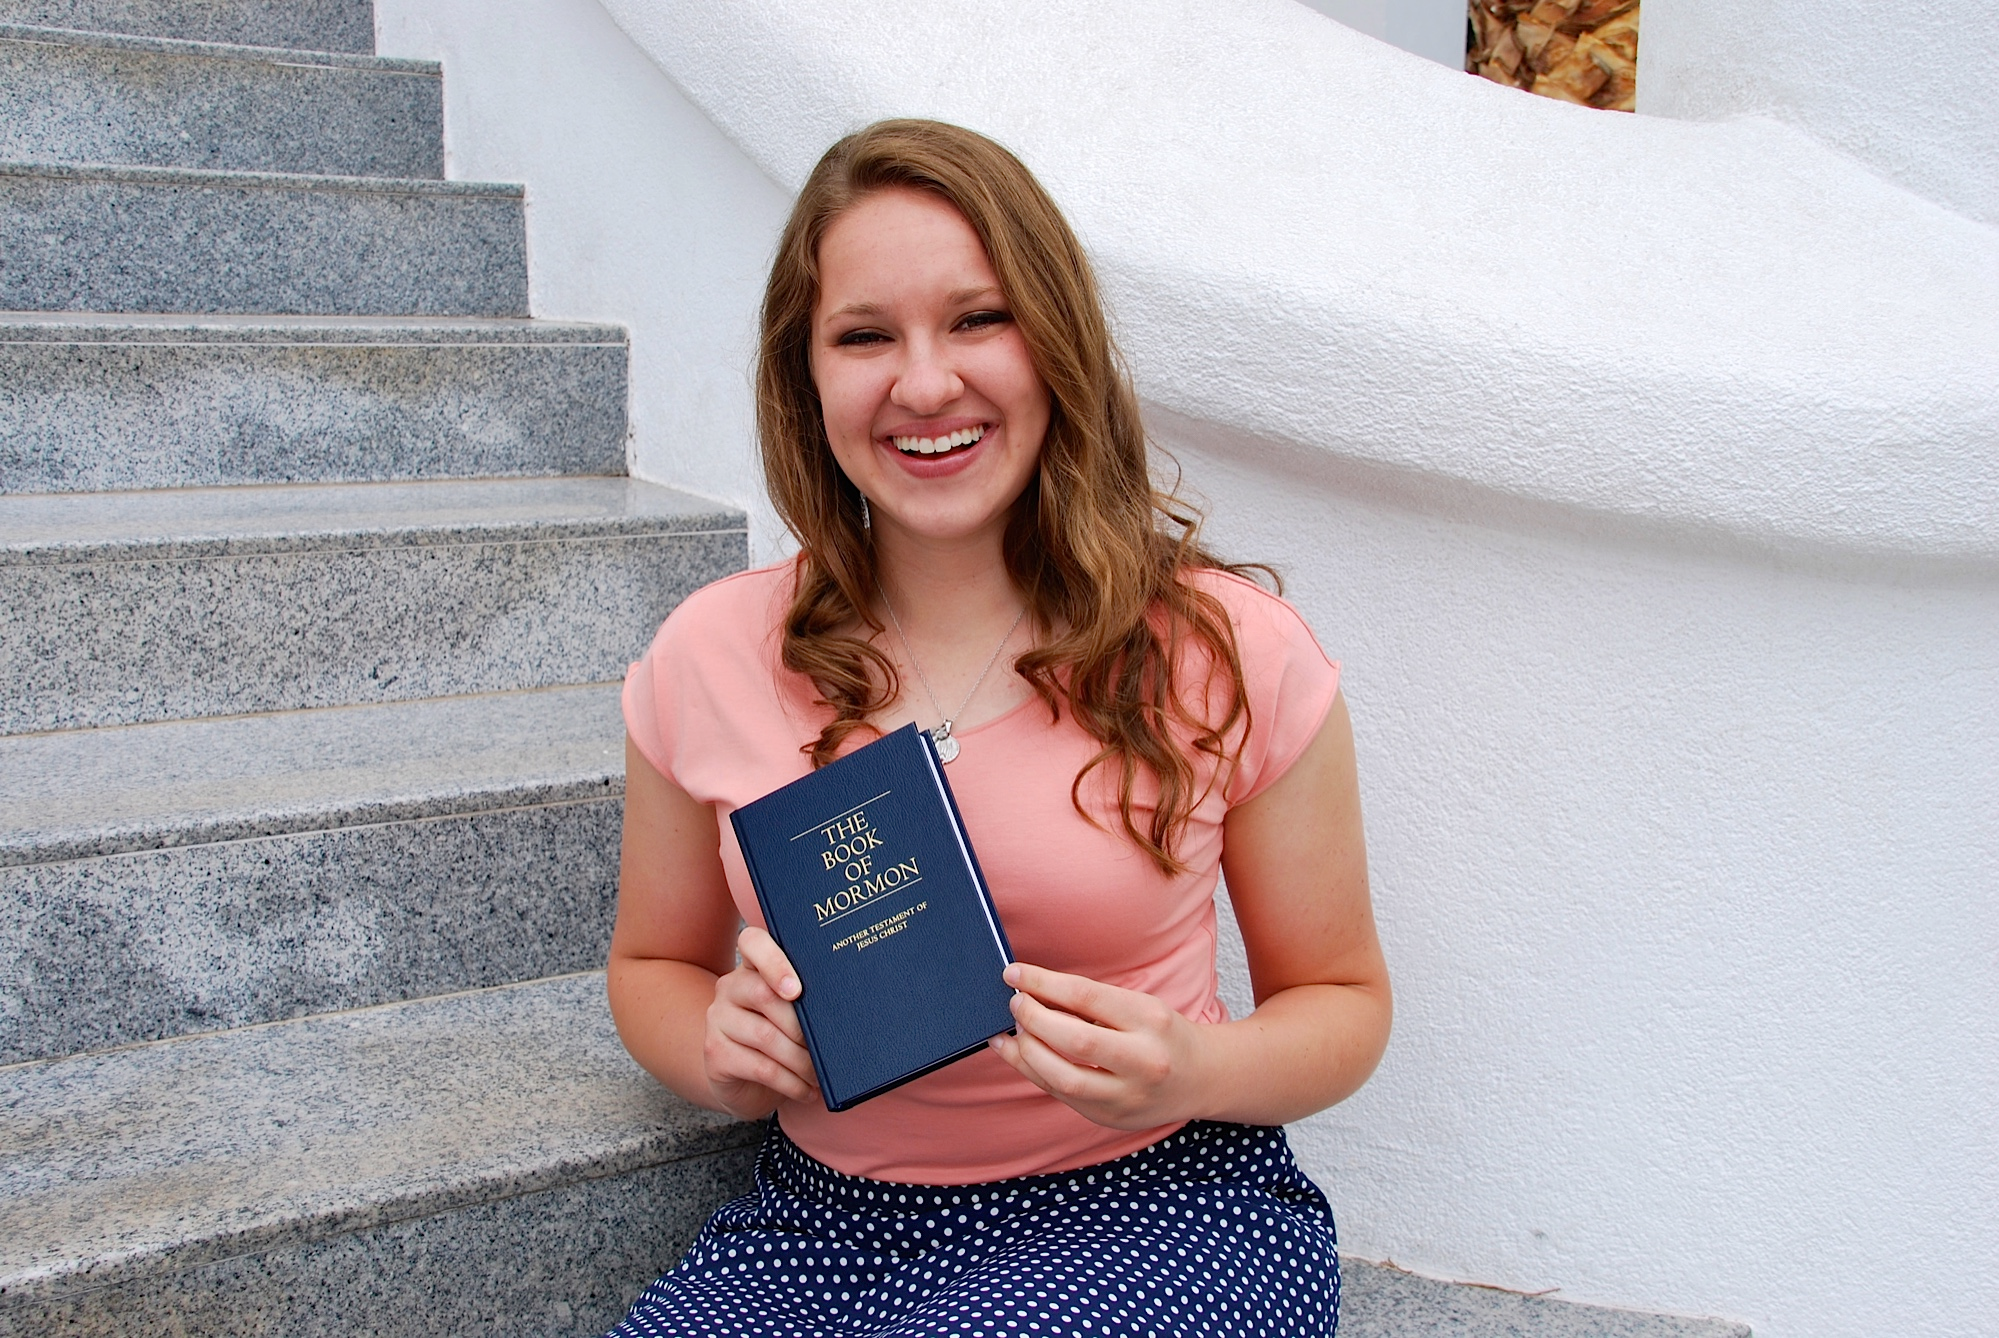 Locals to speak Sunday before leaving for Missions